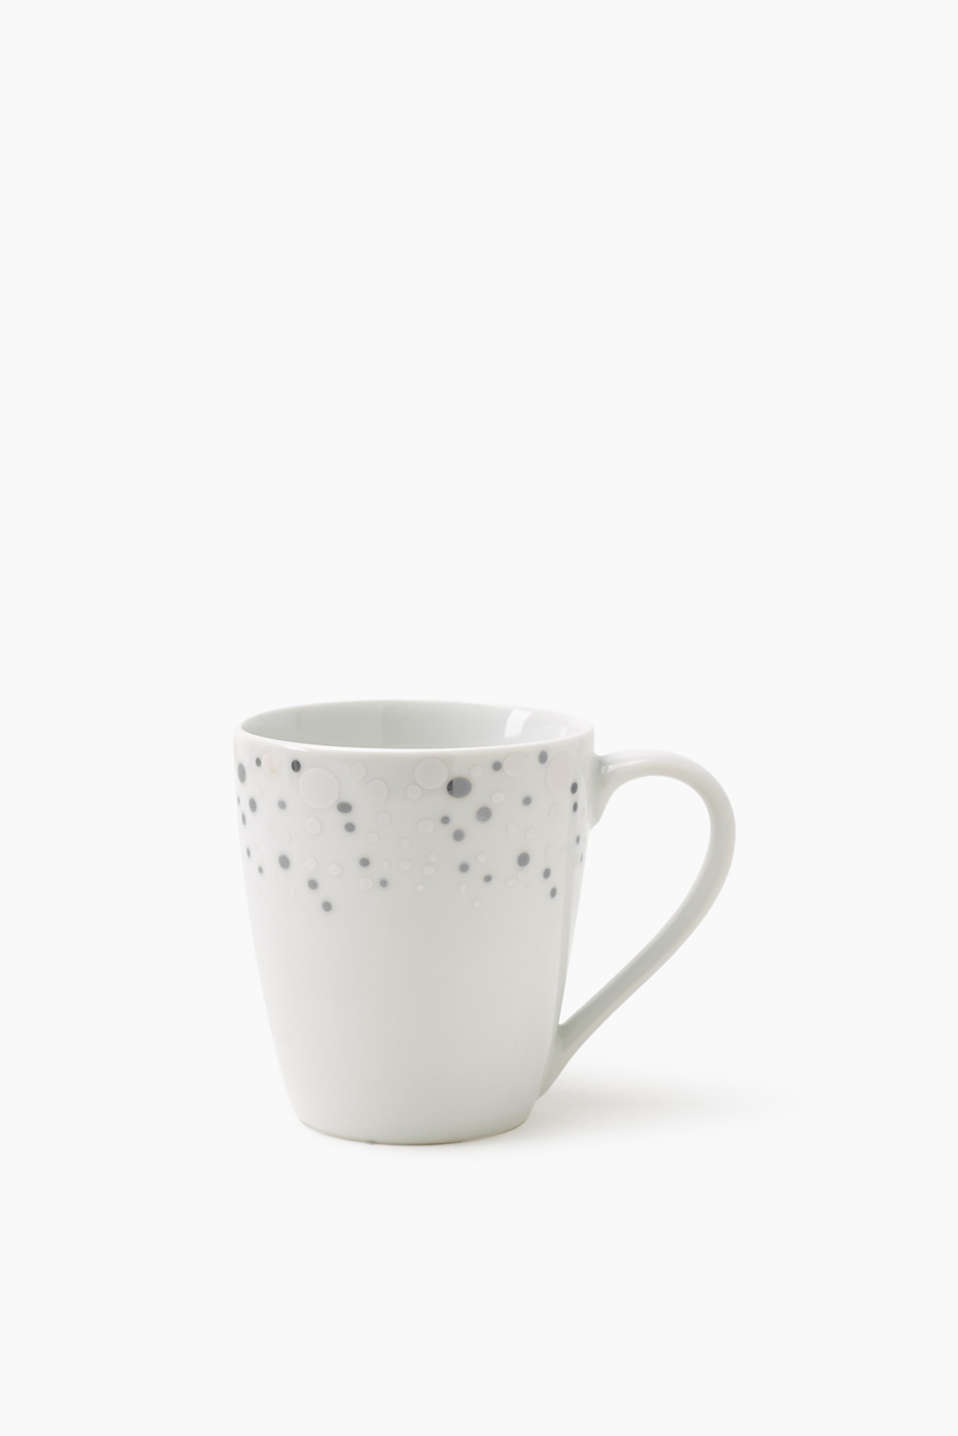 Collection: Dila Spark – a stylish way to present food and drinks! Cup with a polka dot design, in ceramic